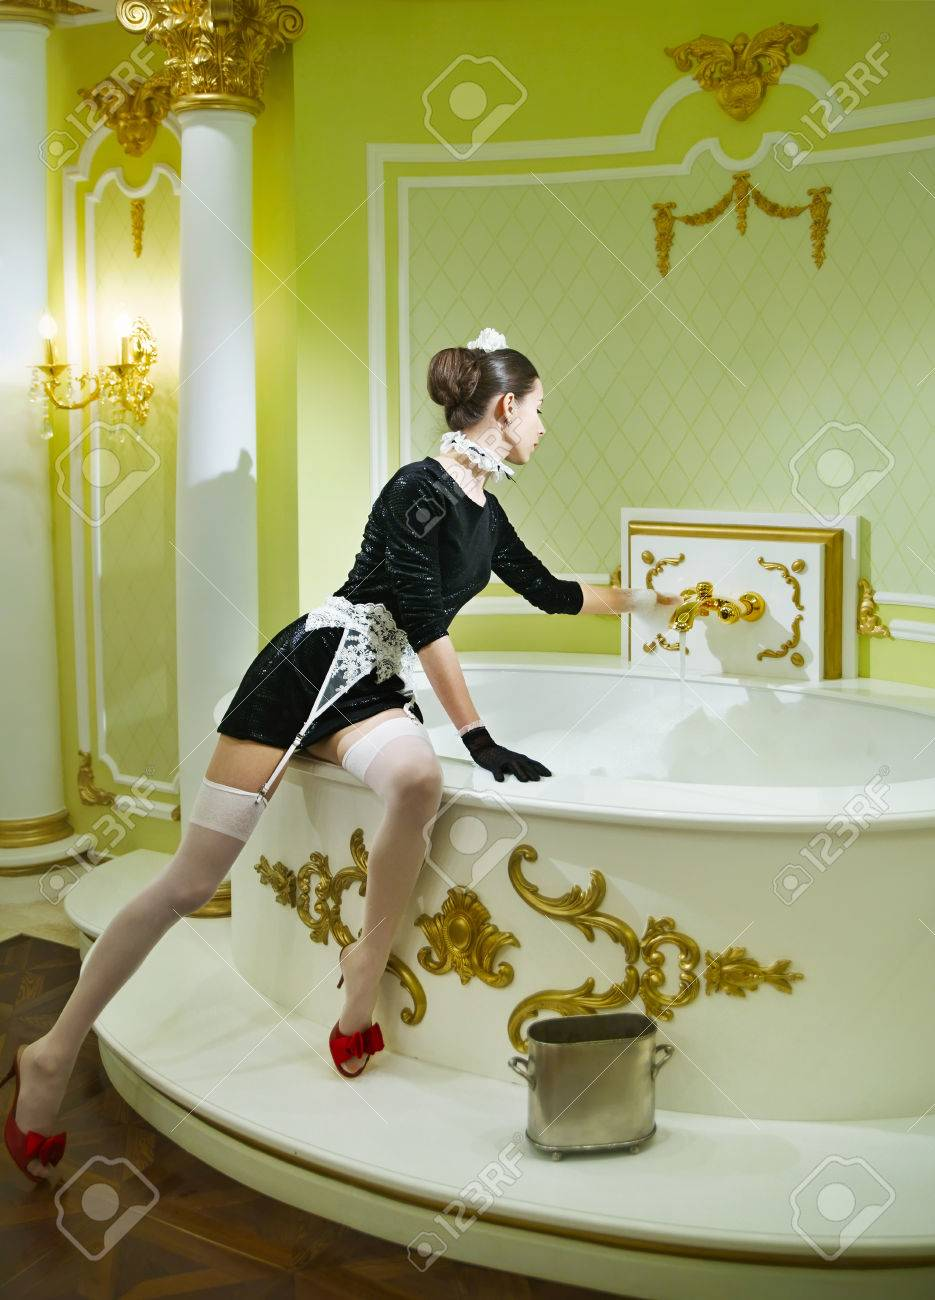 Sexy images in bathroom